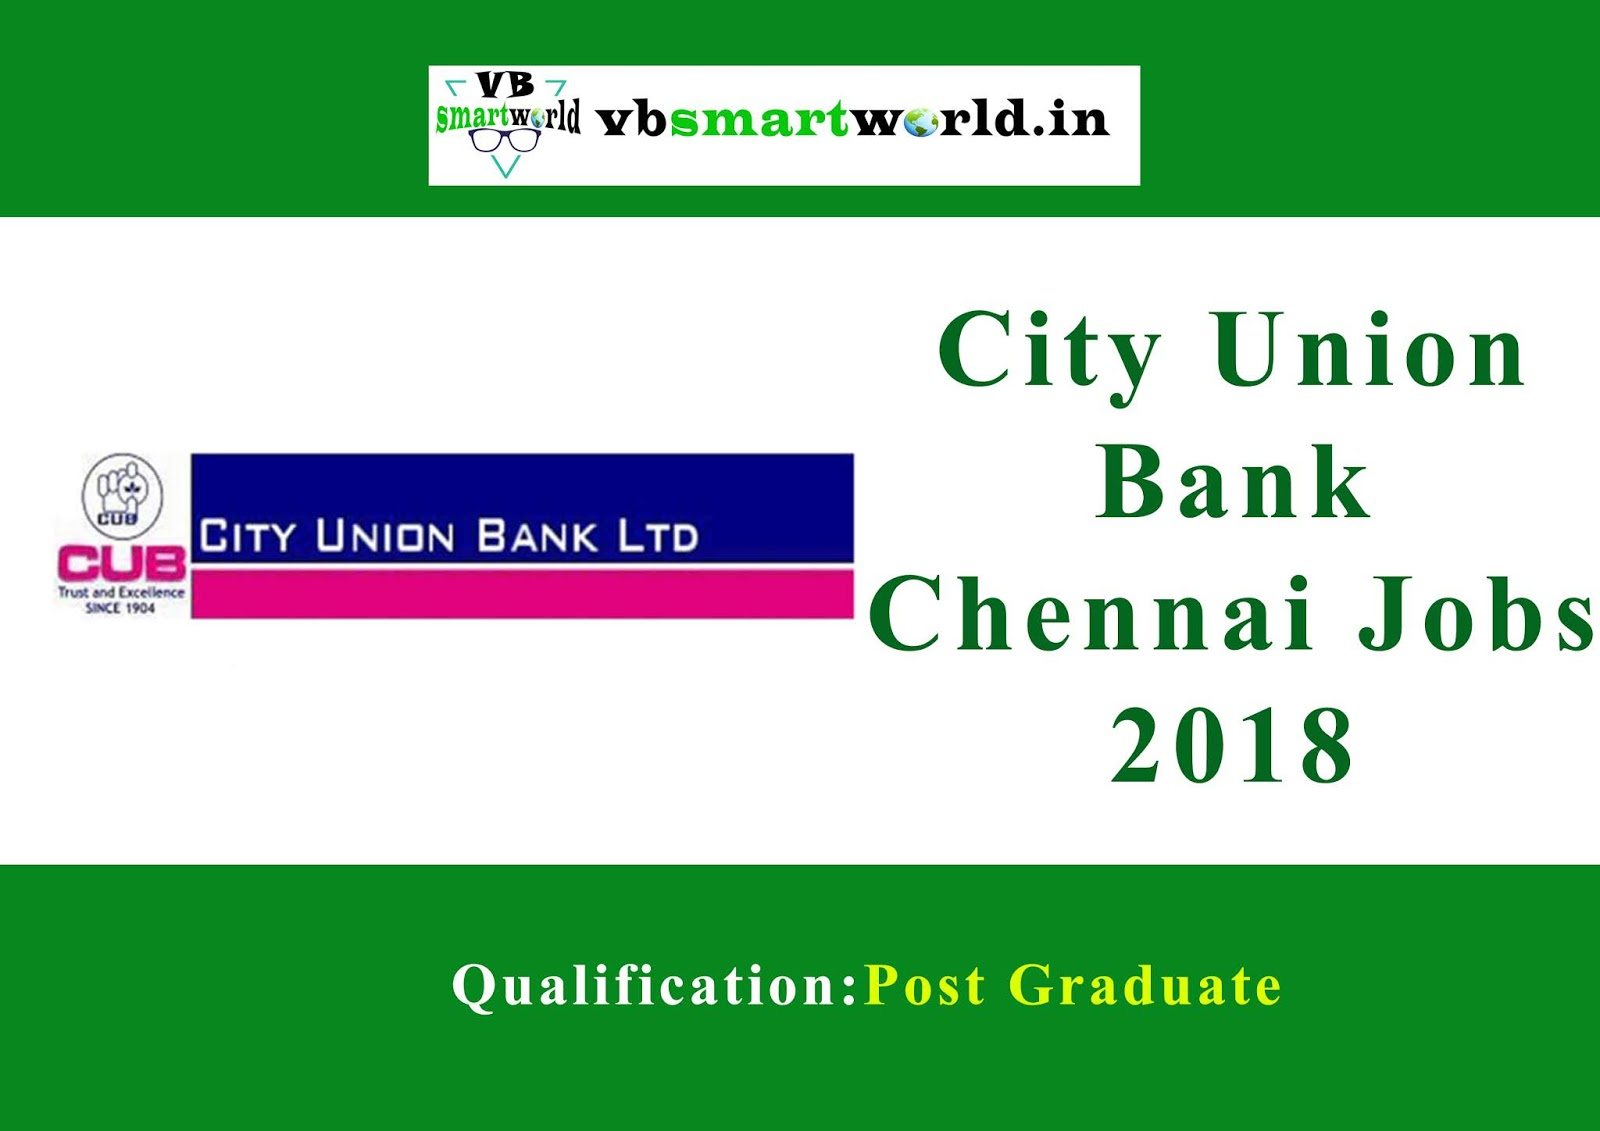 City union bank logo vector (. Eps) free download.